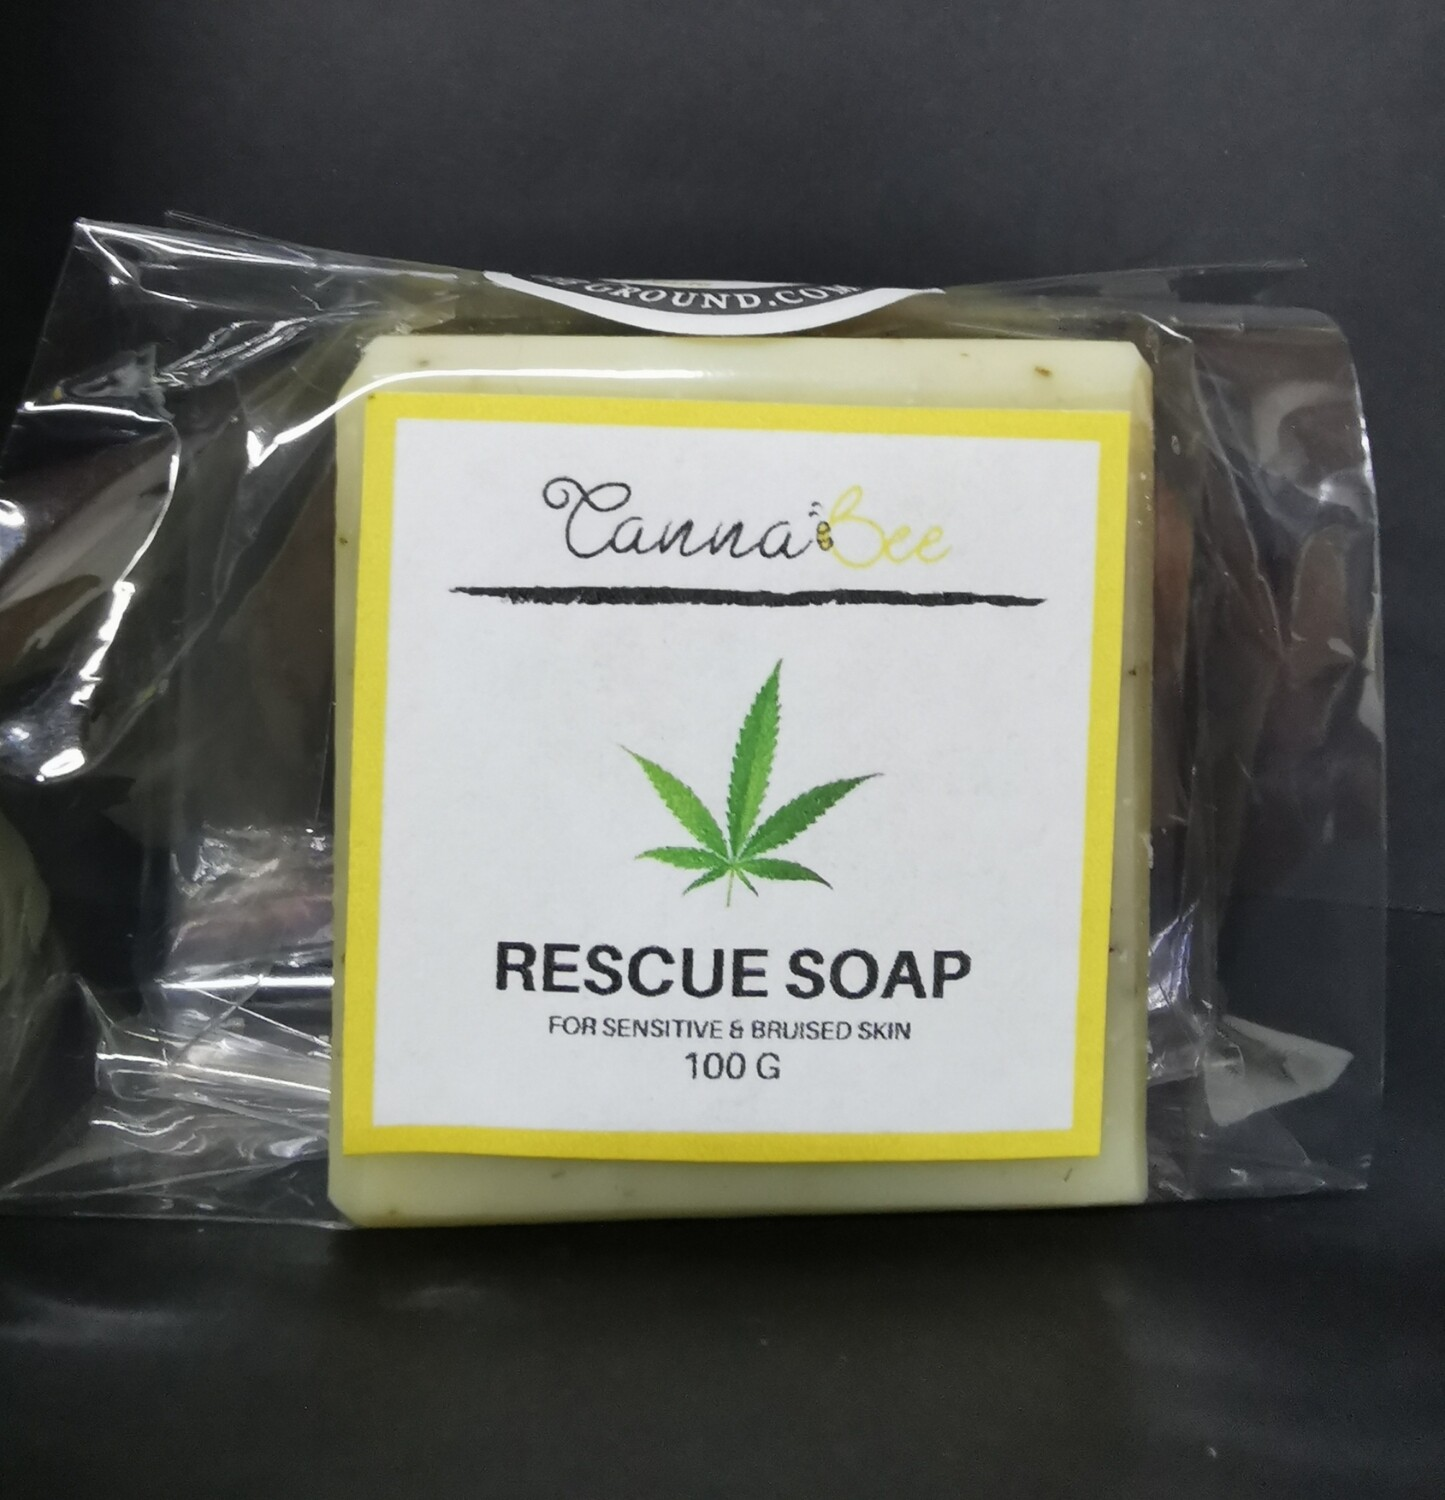 Cannabis Rescue Soap 100g